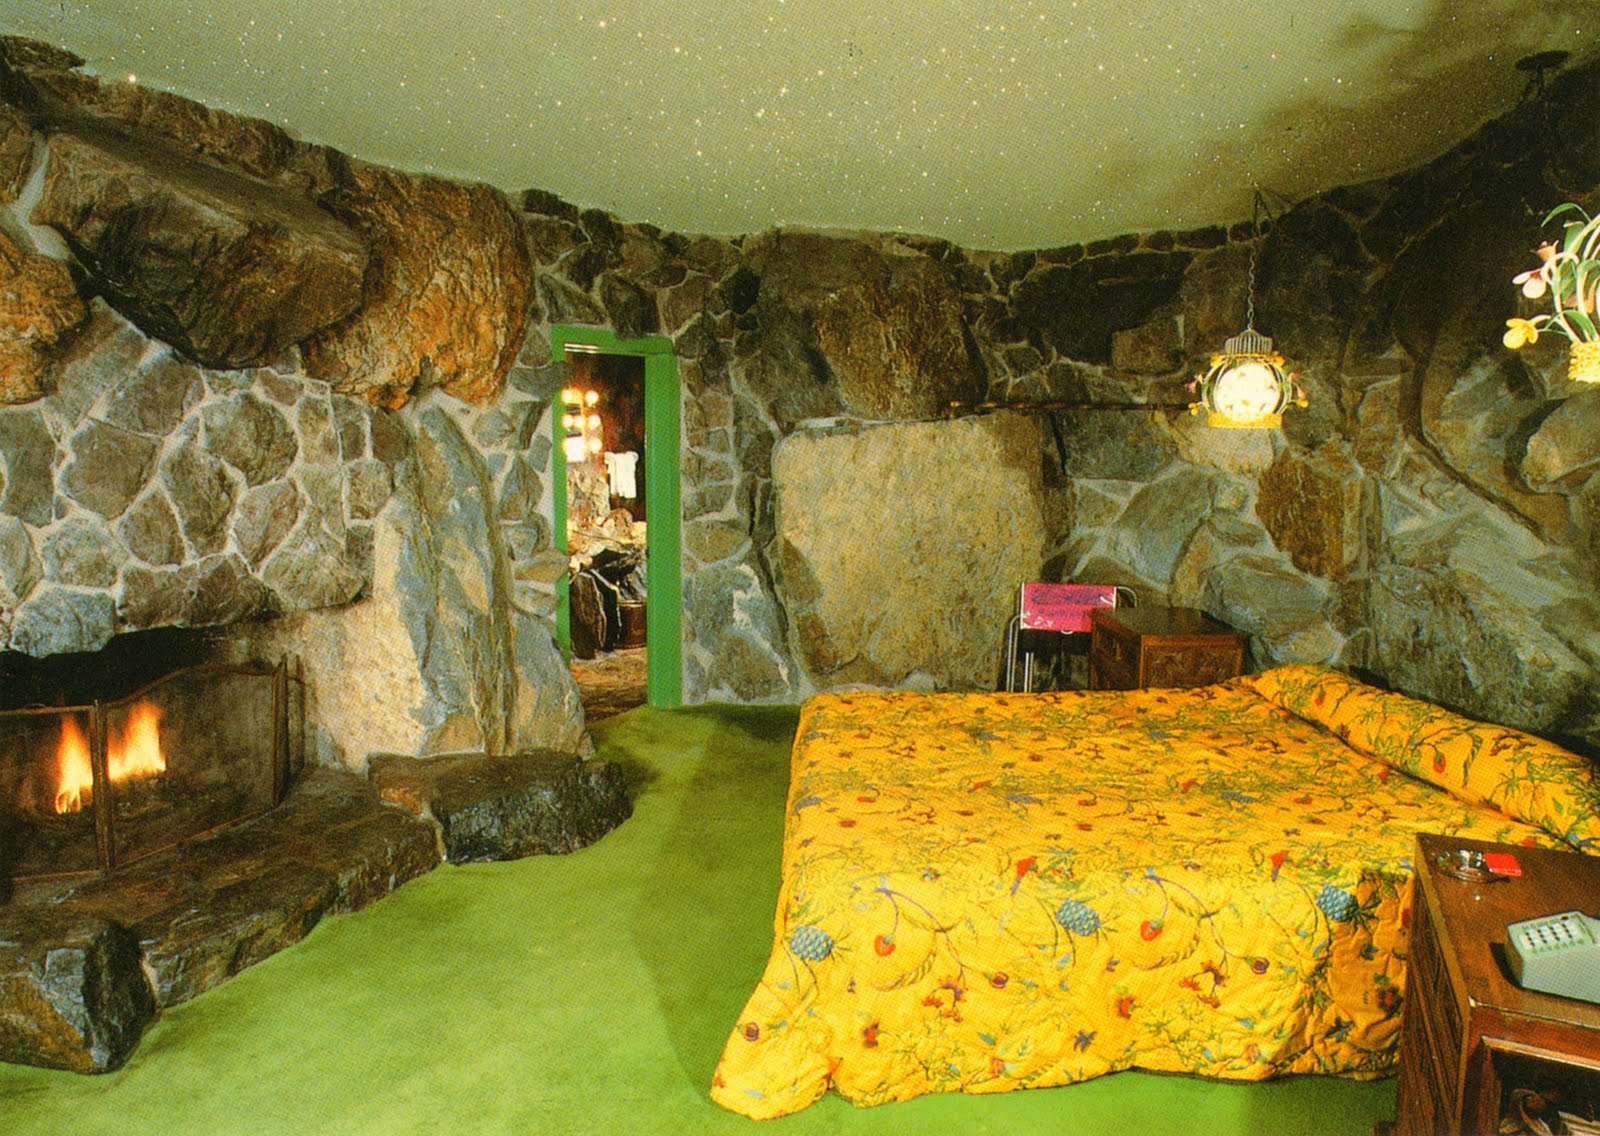 The grotto suite at the madonna inn california matthew - 3 bedroom houses for rent in san luis obispo ...